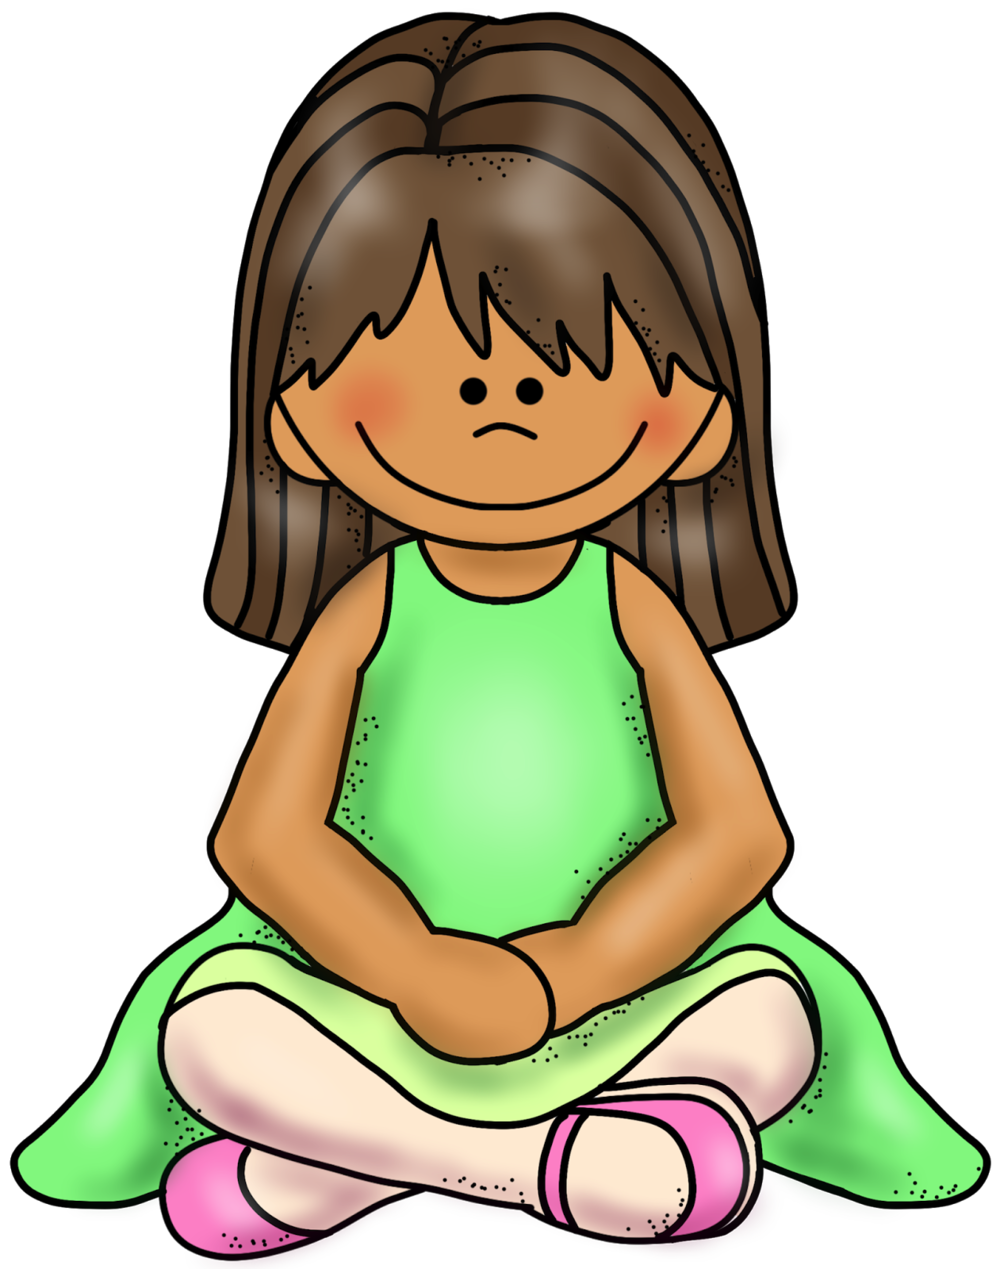 Clipart child sitting criss cross picture royalty free library What's up with